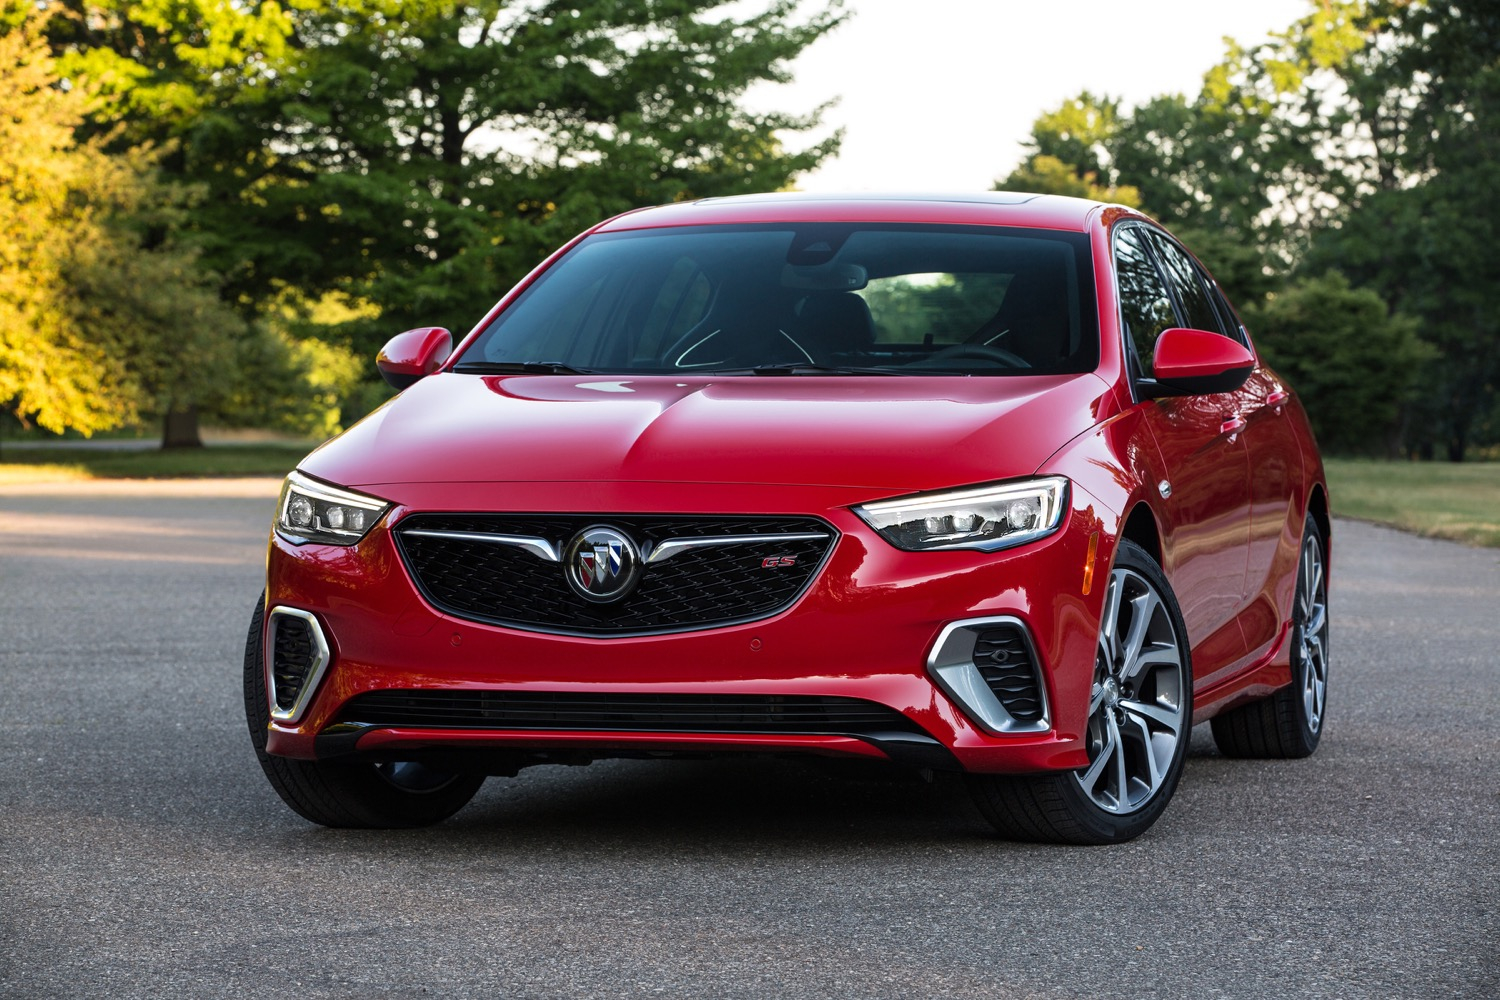 We Have Some Beef With This 2018 Buick Regal Gs Review | Gm New 2022 Buick Regal Tourx Review, Specs, 0-60